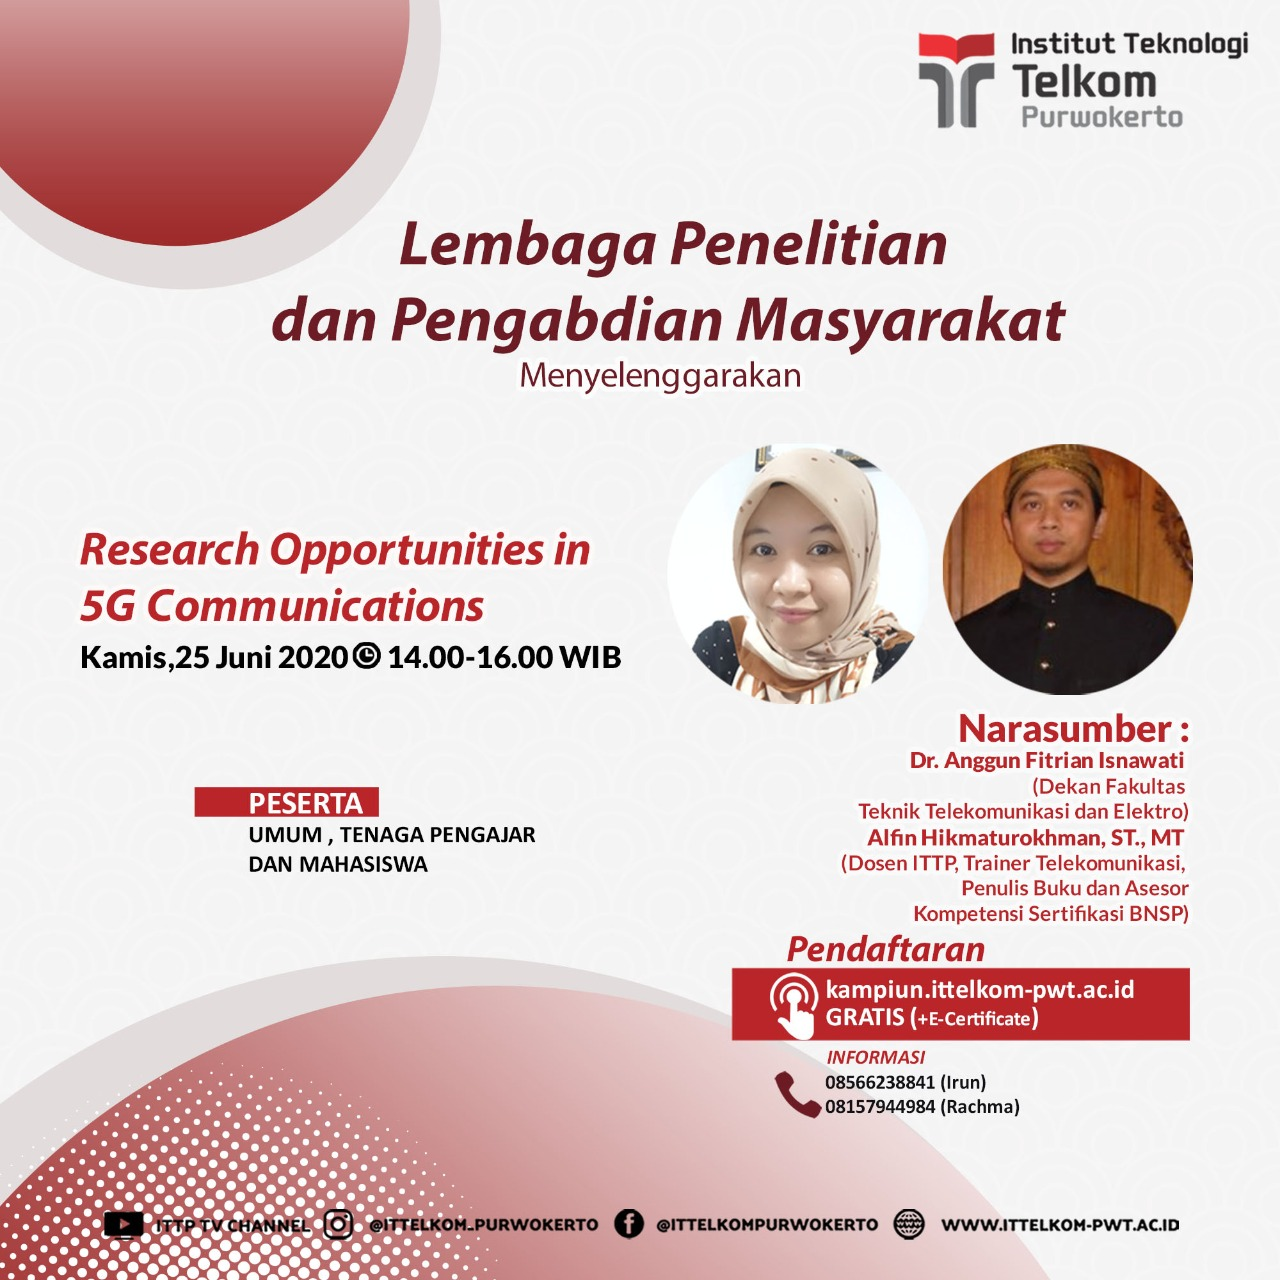 Research Opportunities in 5G Communications